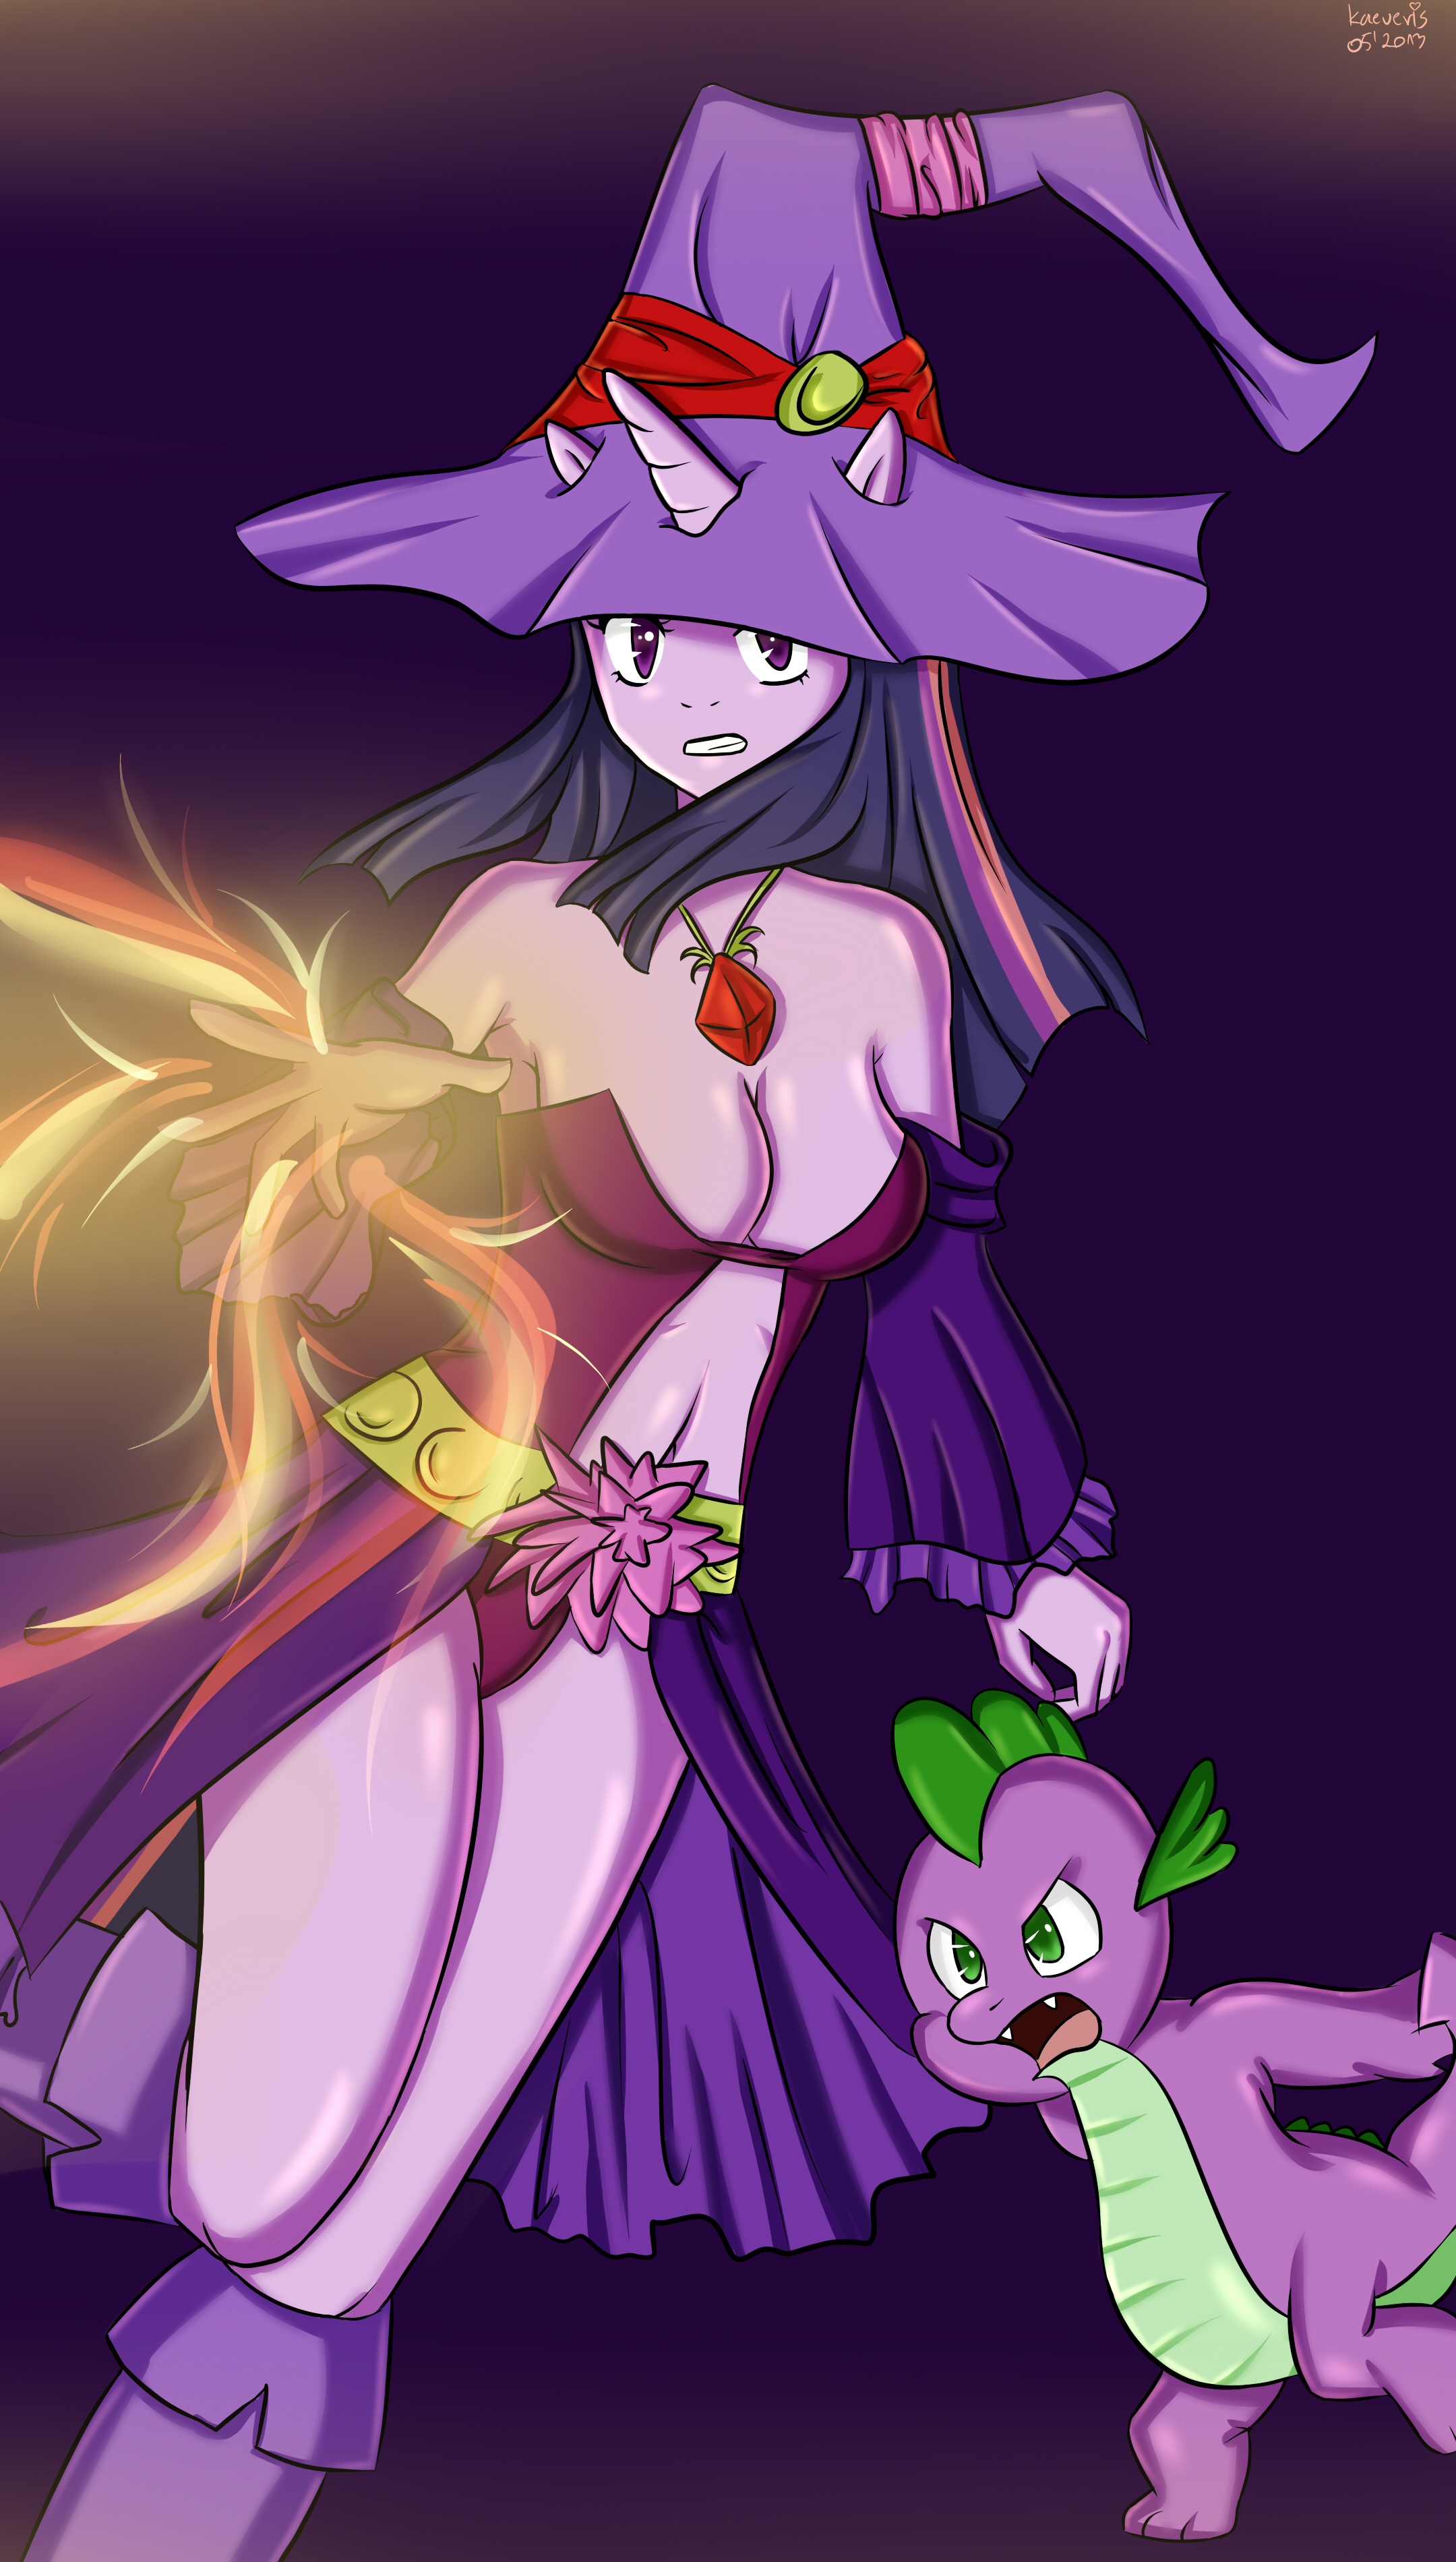 Return Of The Spice Girls Wallpaper My Little Fantasy Twilight Sparkle Mage My Little Pony